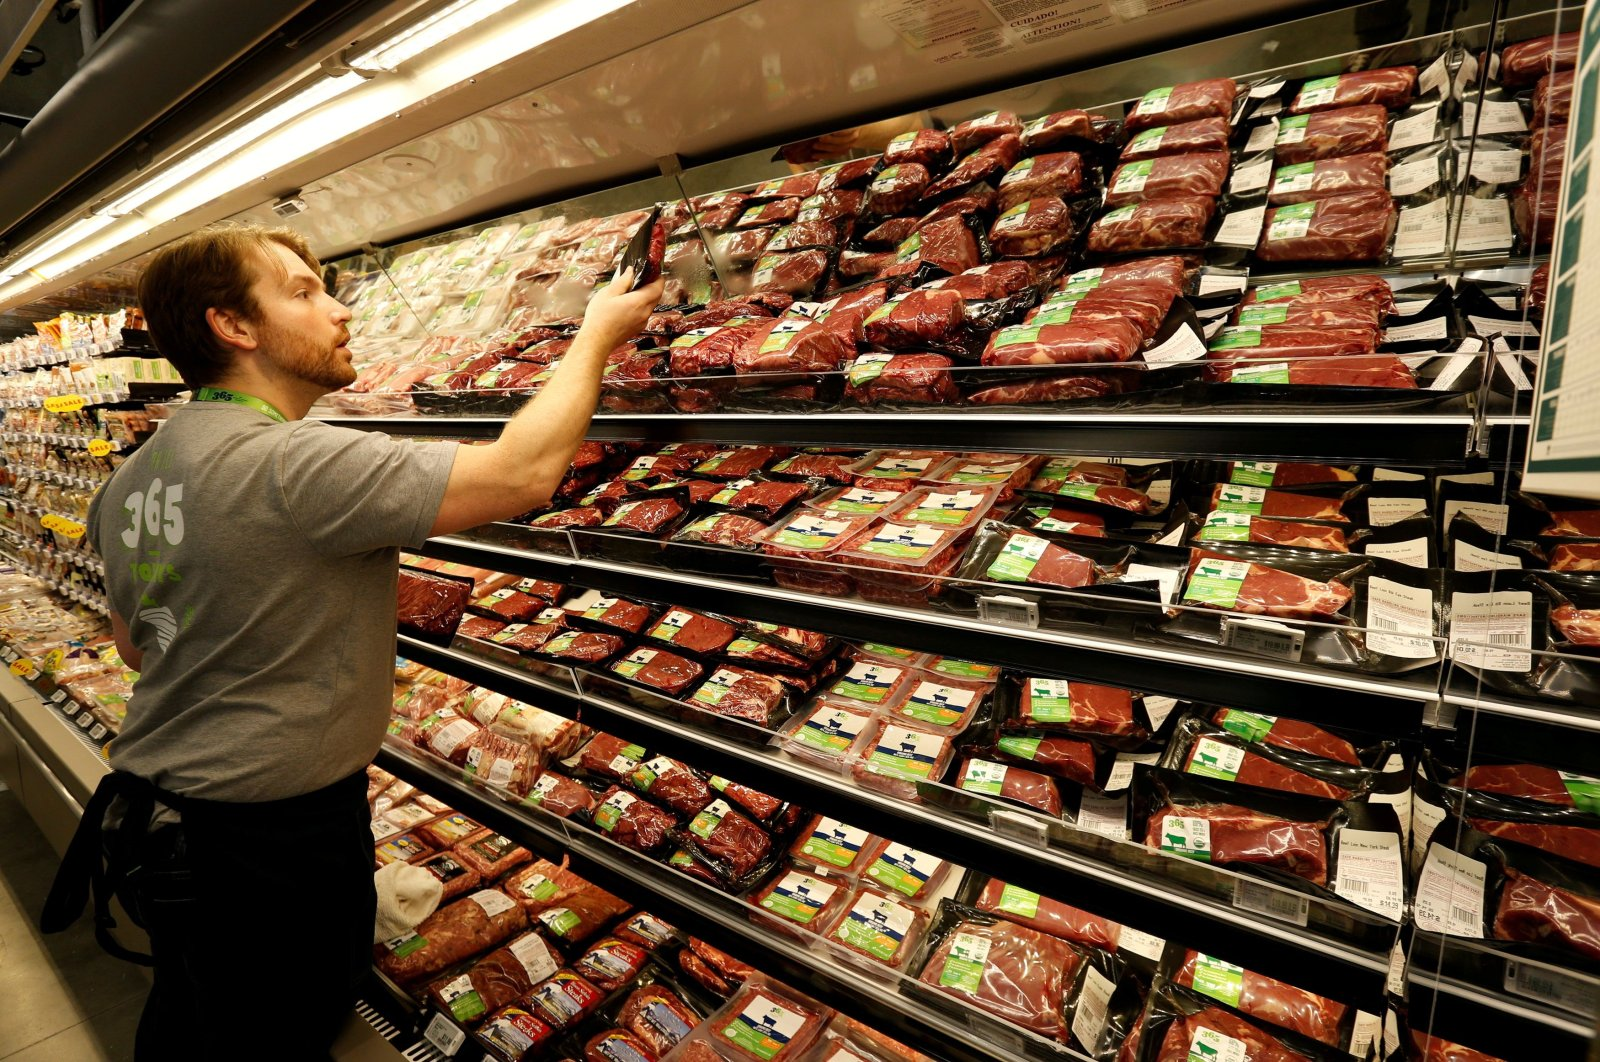 An employee checks packaged meat at a 365 by Whole Foods Market grocery store ahead of its opening day in Los Angeles, U.S., May 24, 2016. (Reuters Photo)